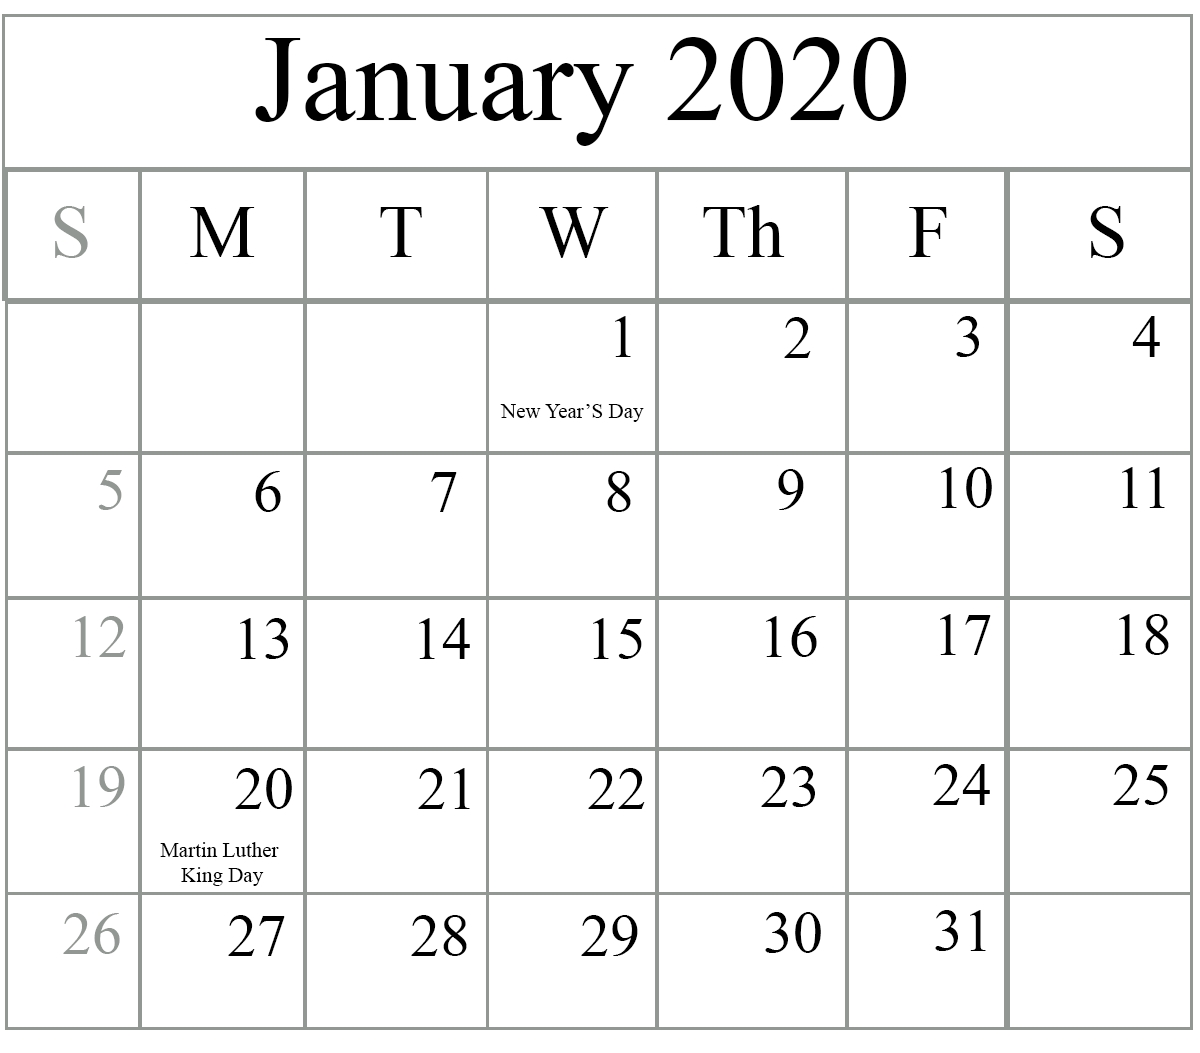 Free January 2020 Printable Calendar In Pdf, Excel & Word-January 2020 Calendar With Holidays Sri Lanka